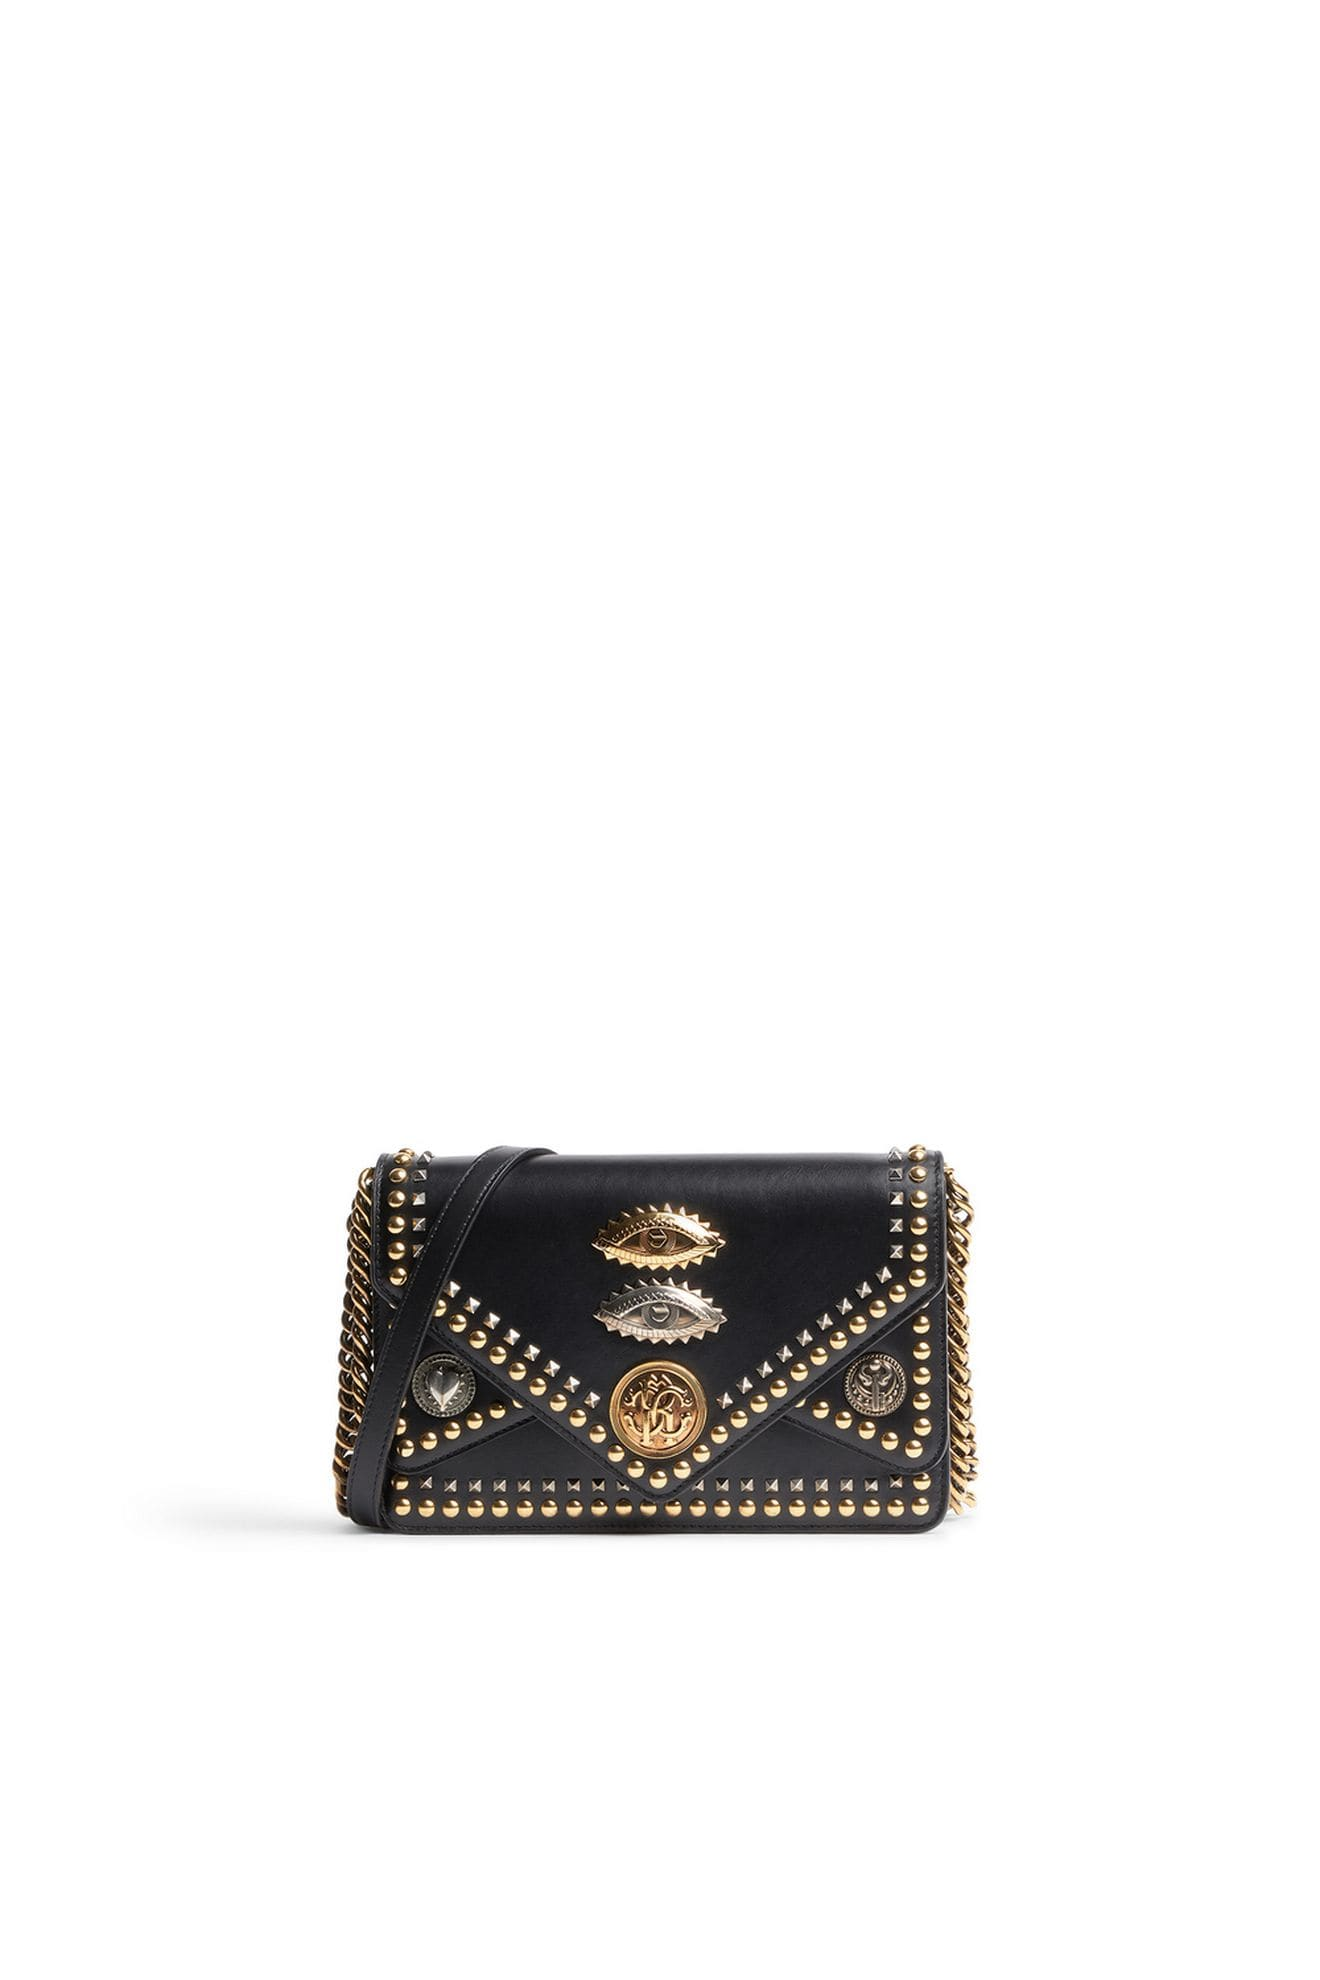 roberto-cavalli-small-shoulder-bag-with-lucky-symbols_13151036_15413913_1320